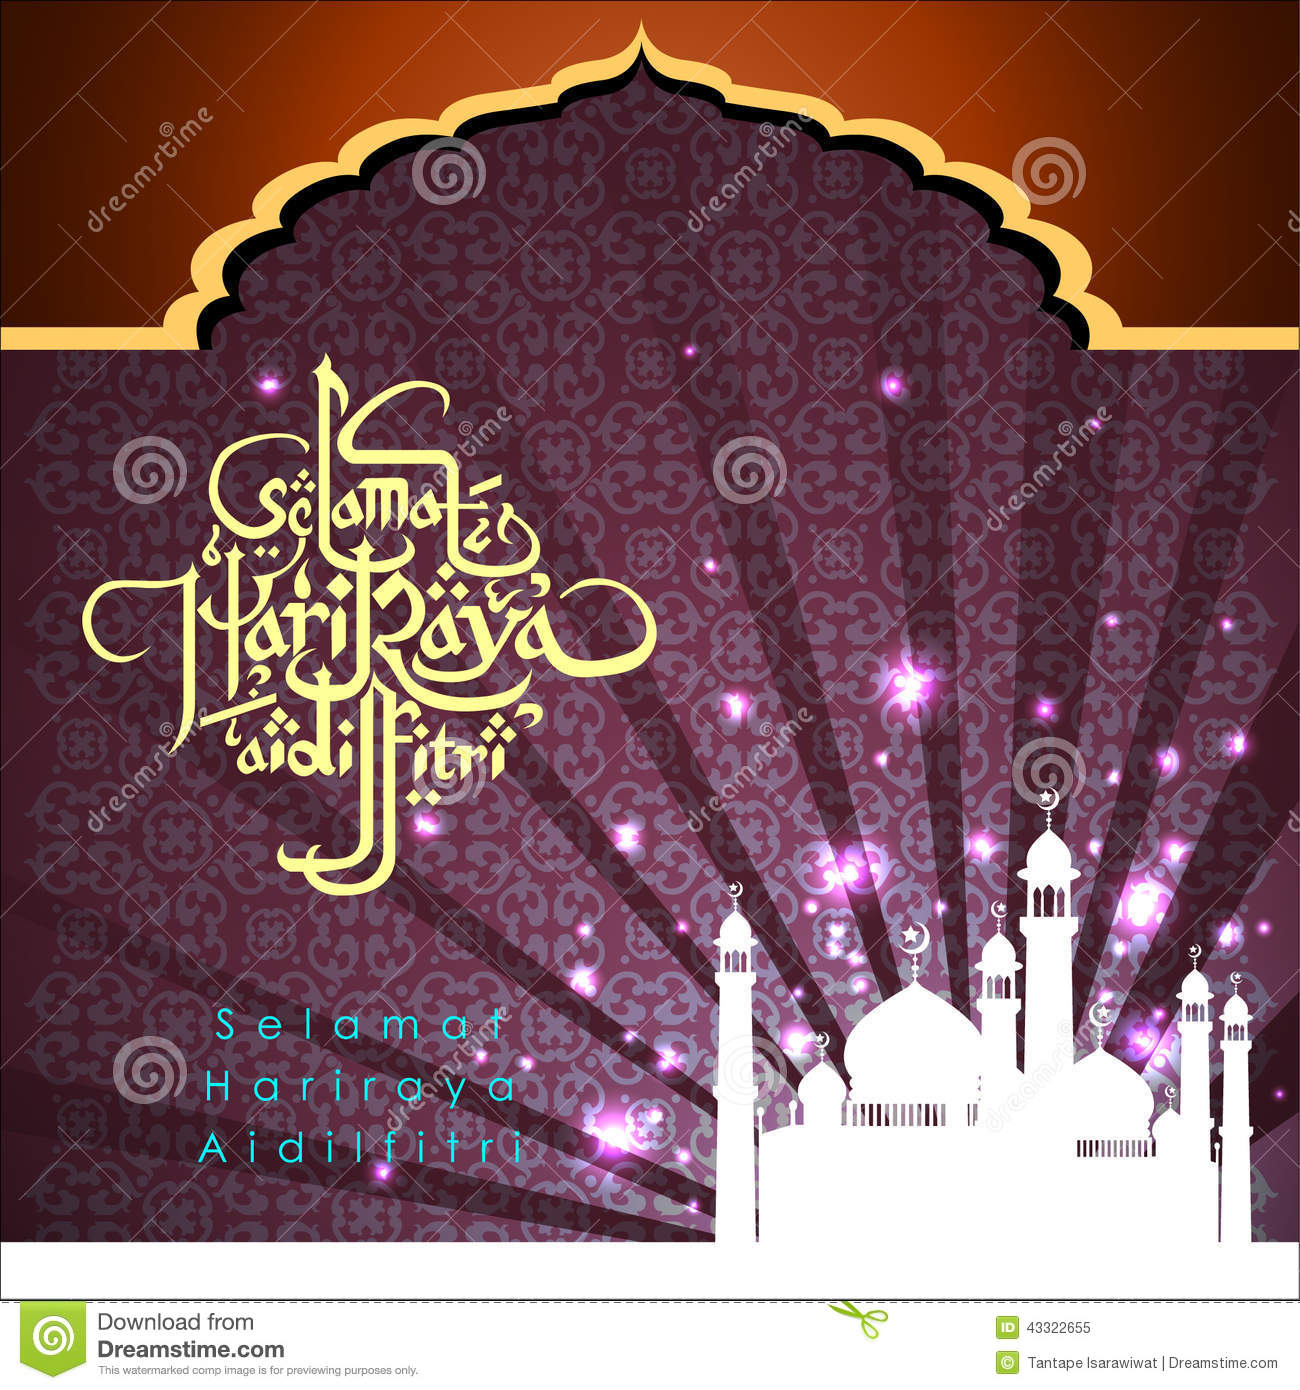 Ramadan Greetings In Arabic Scriptdilfitri Graphic Designlama